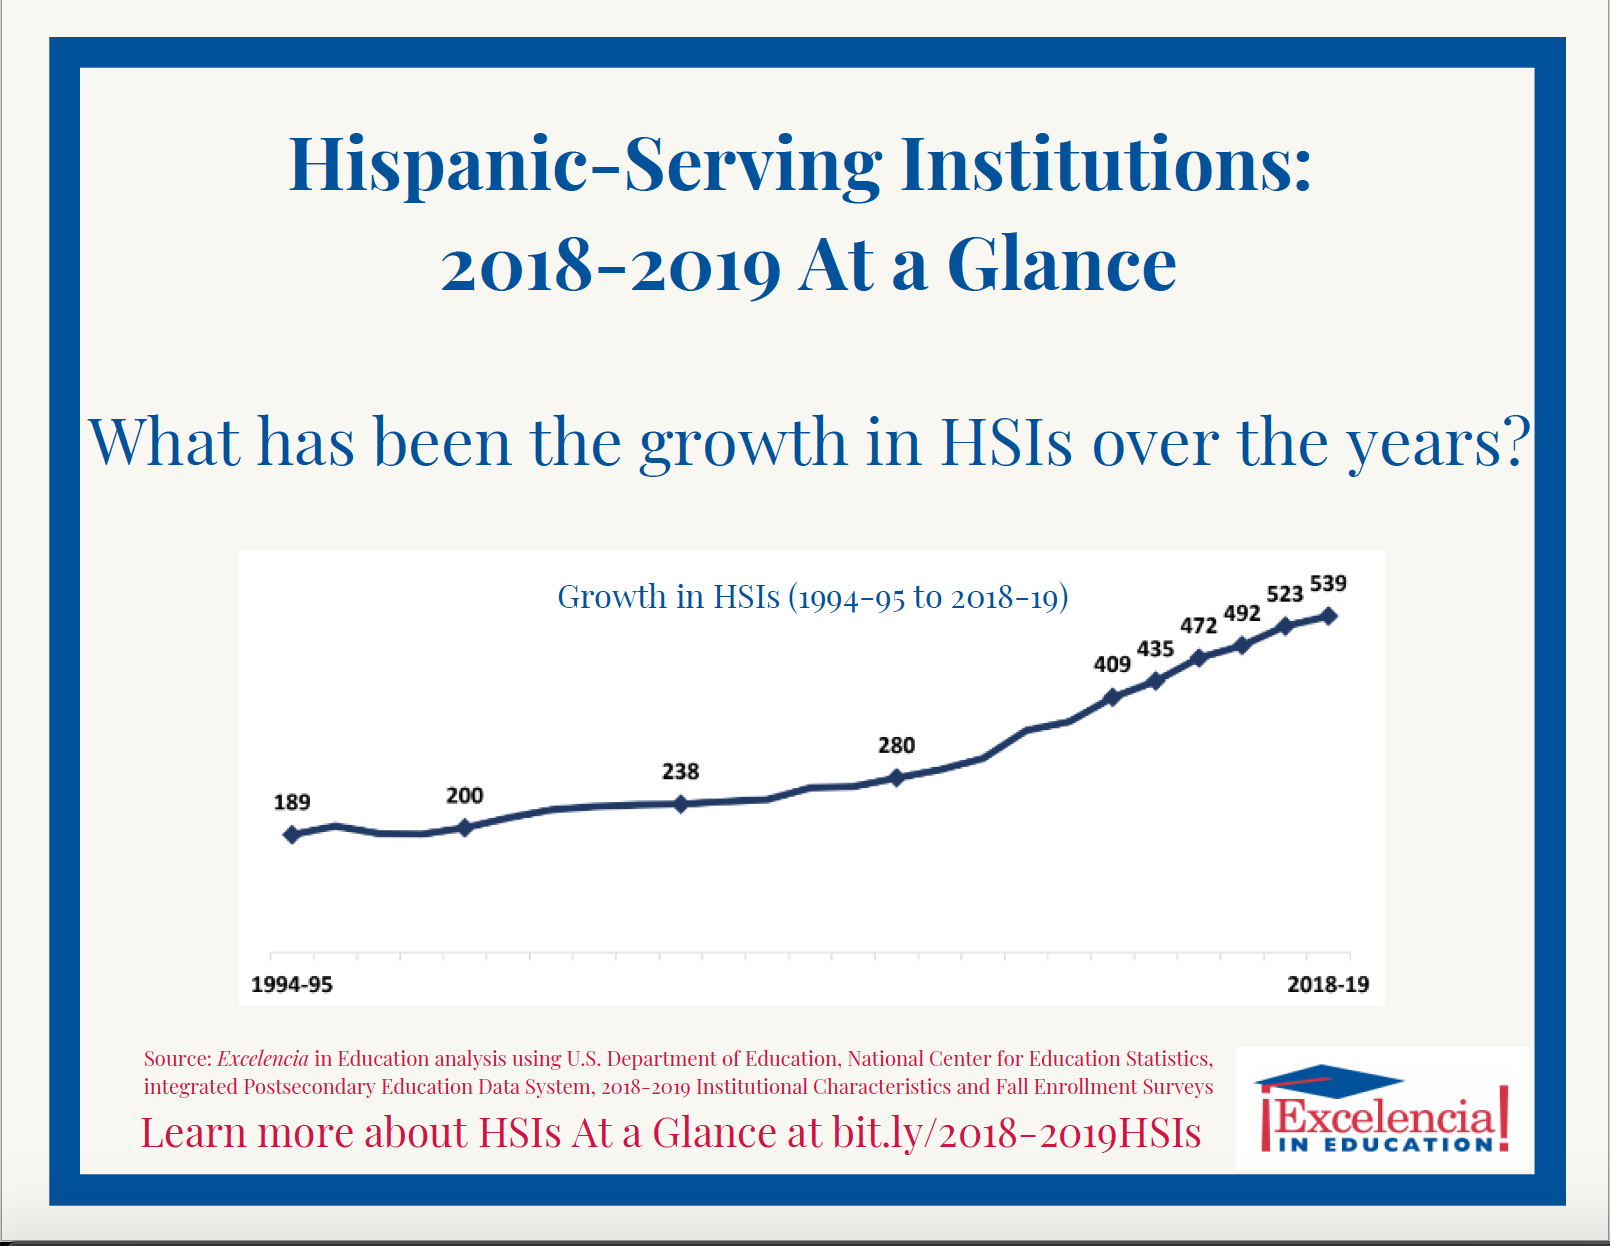 Graphic-HSIs at a Glance: 2018-19 - Growth Over the Years